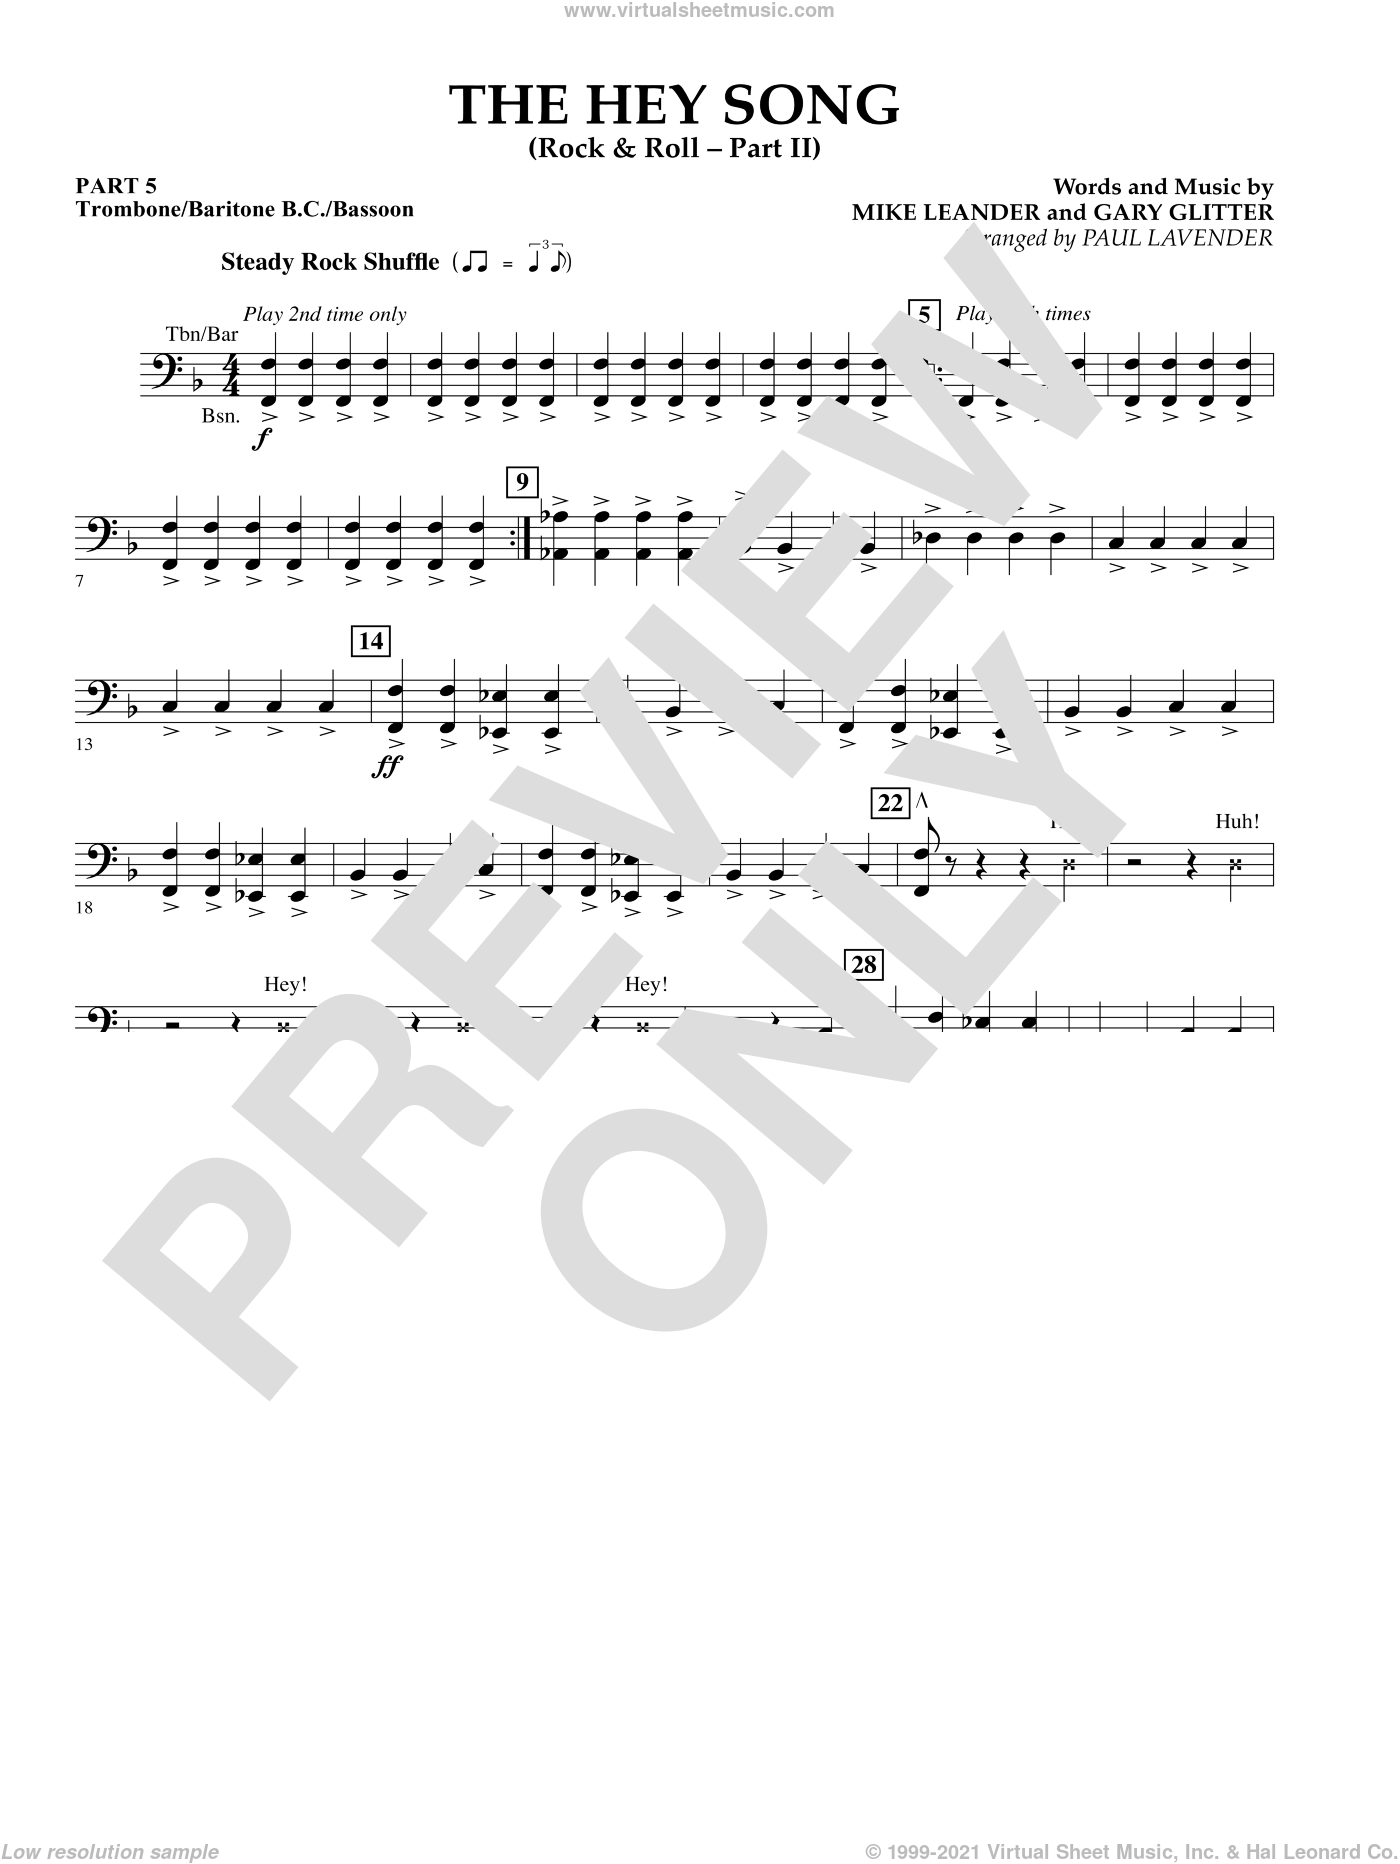 The Hey Song (Rock and Roll Part II) (Flex-Band) sheet music for concert band (trombone/bar. b.c./bsn.) by Gary Glitter, Paul Lavender and Mike Leander, intermediate skill level